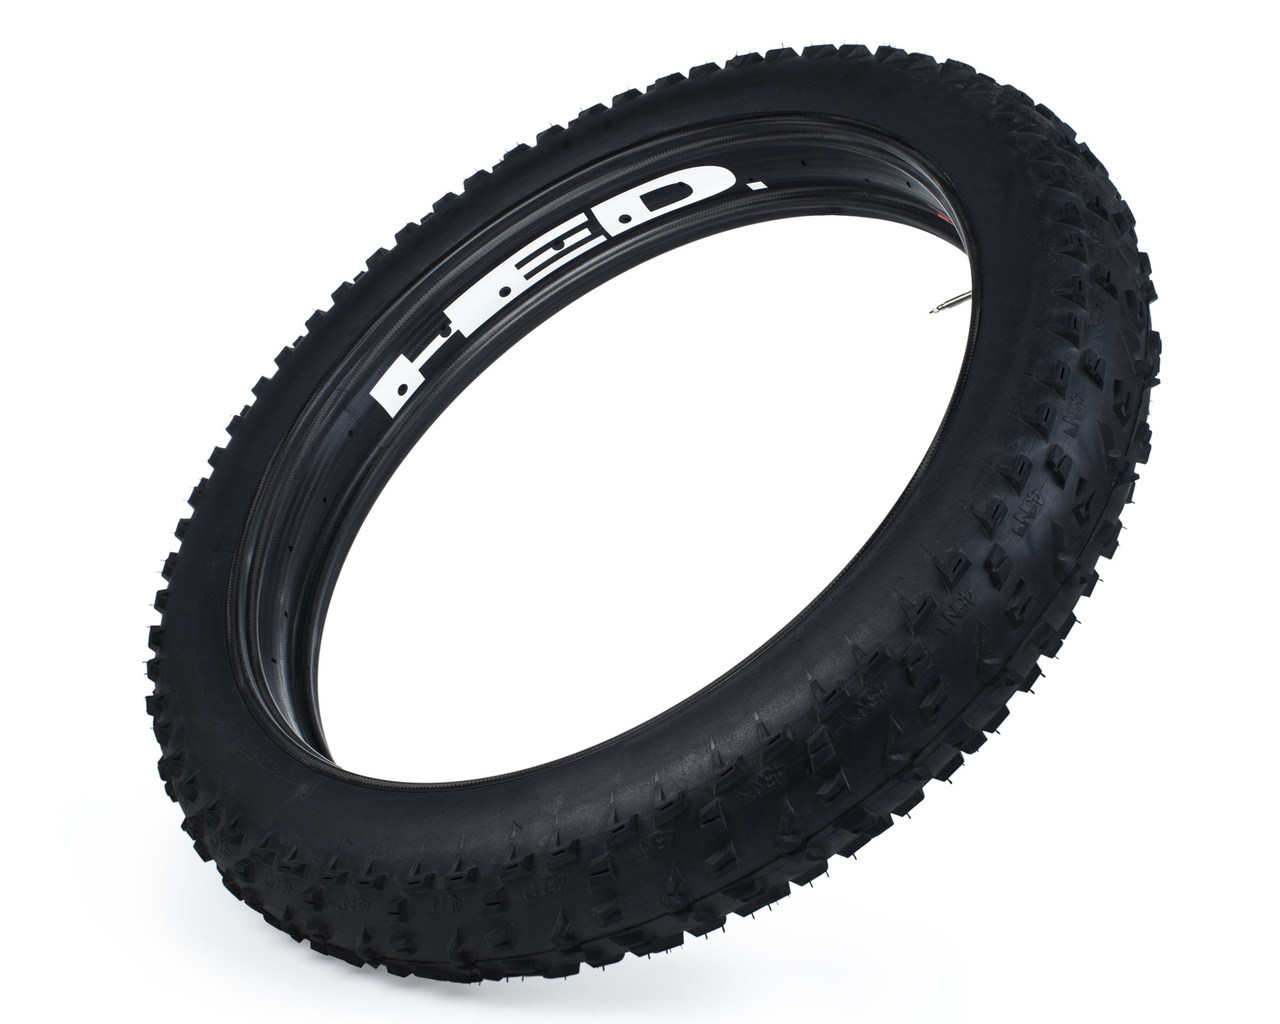 """The HED """"Big Fat Deal"""". The BFD is a 100mm ultra wide carbon rim that weighs in at 500 grams! Hit the trails with a massive rubber foot print!"""